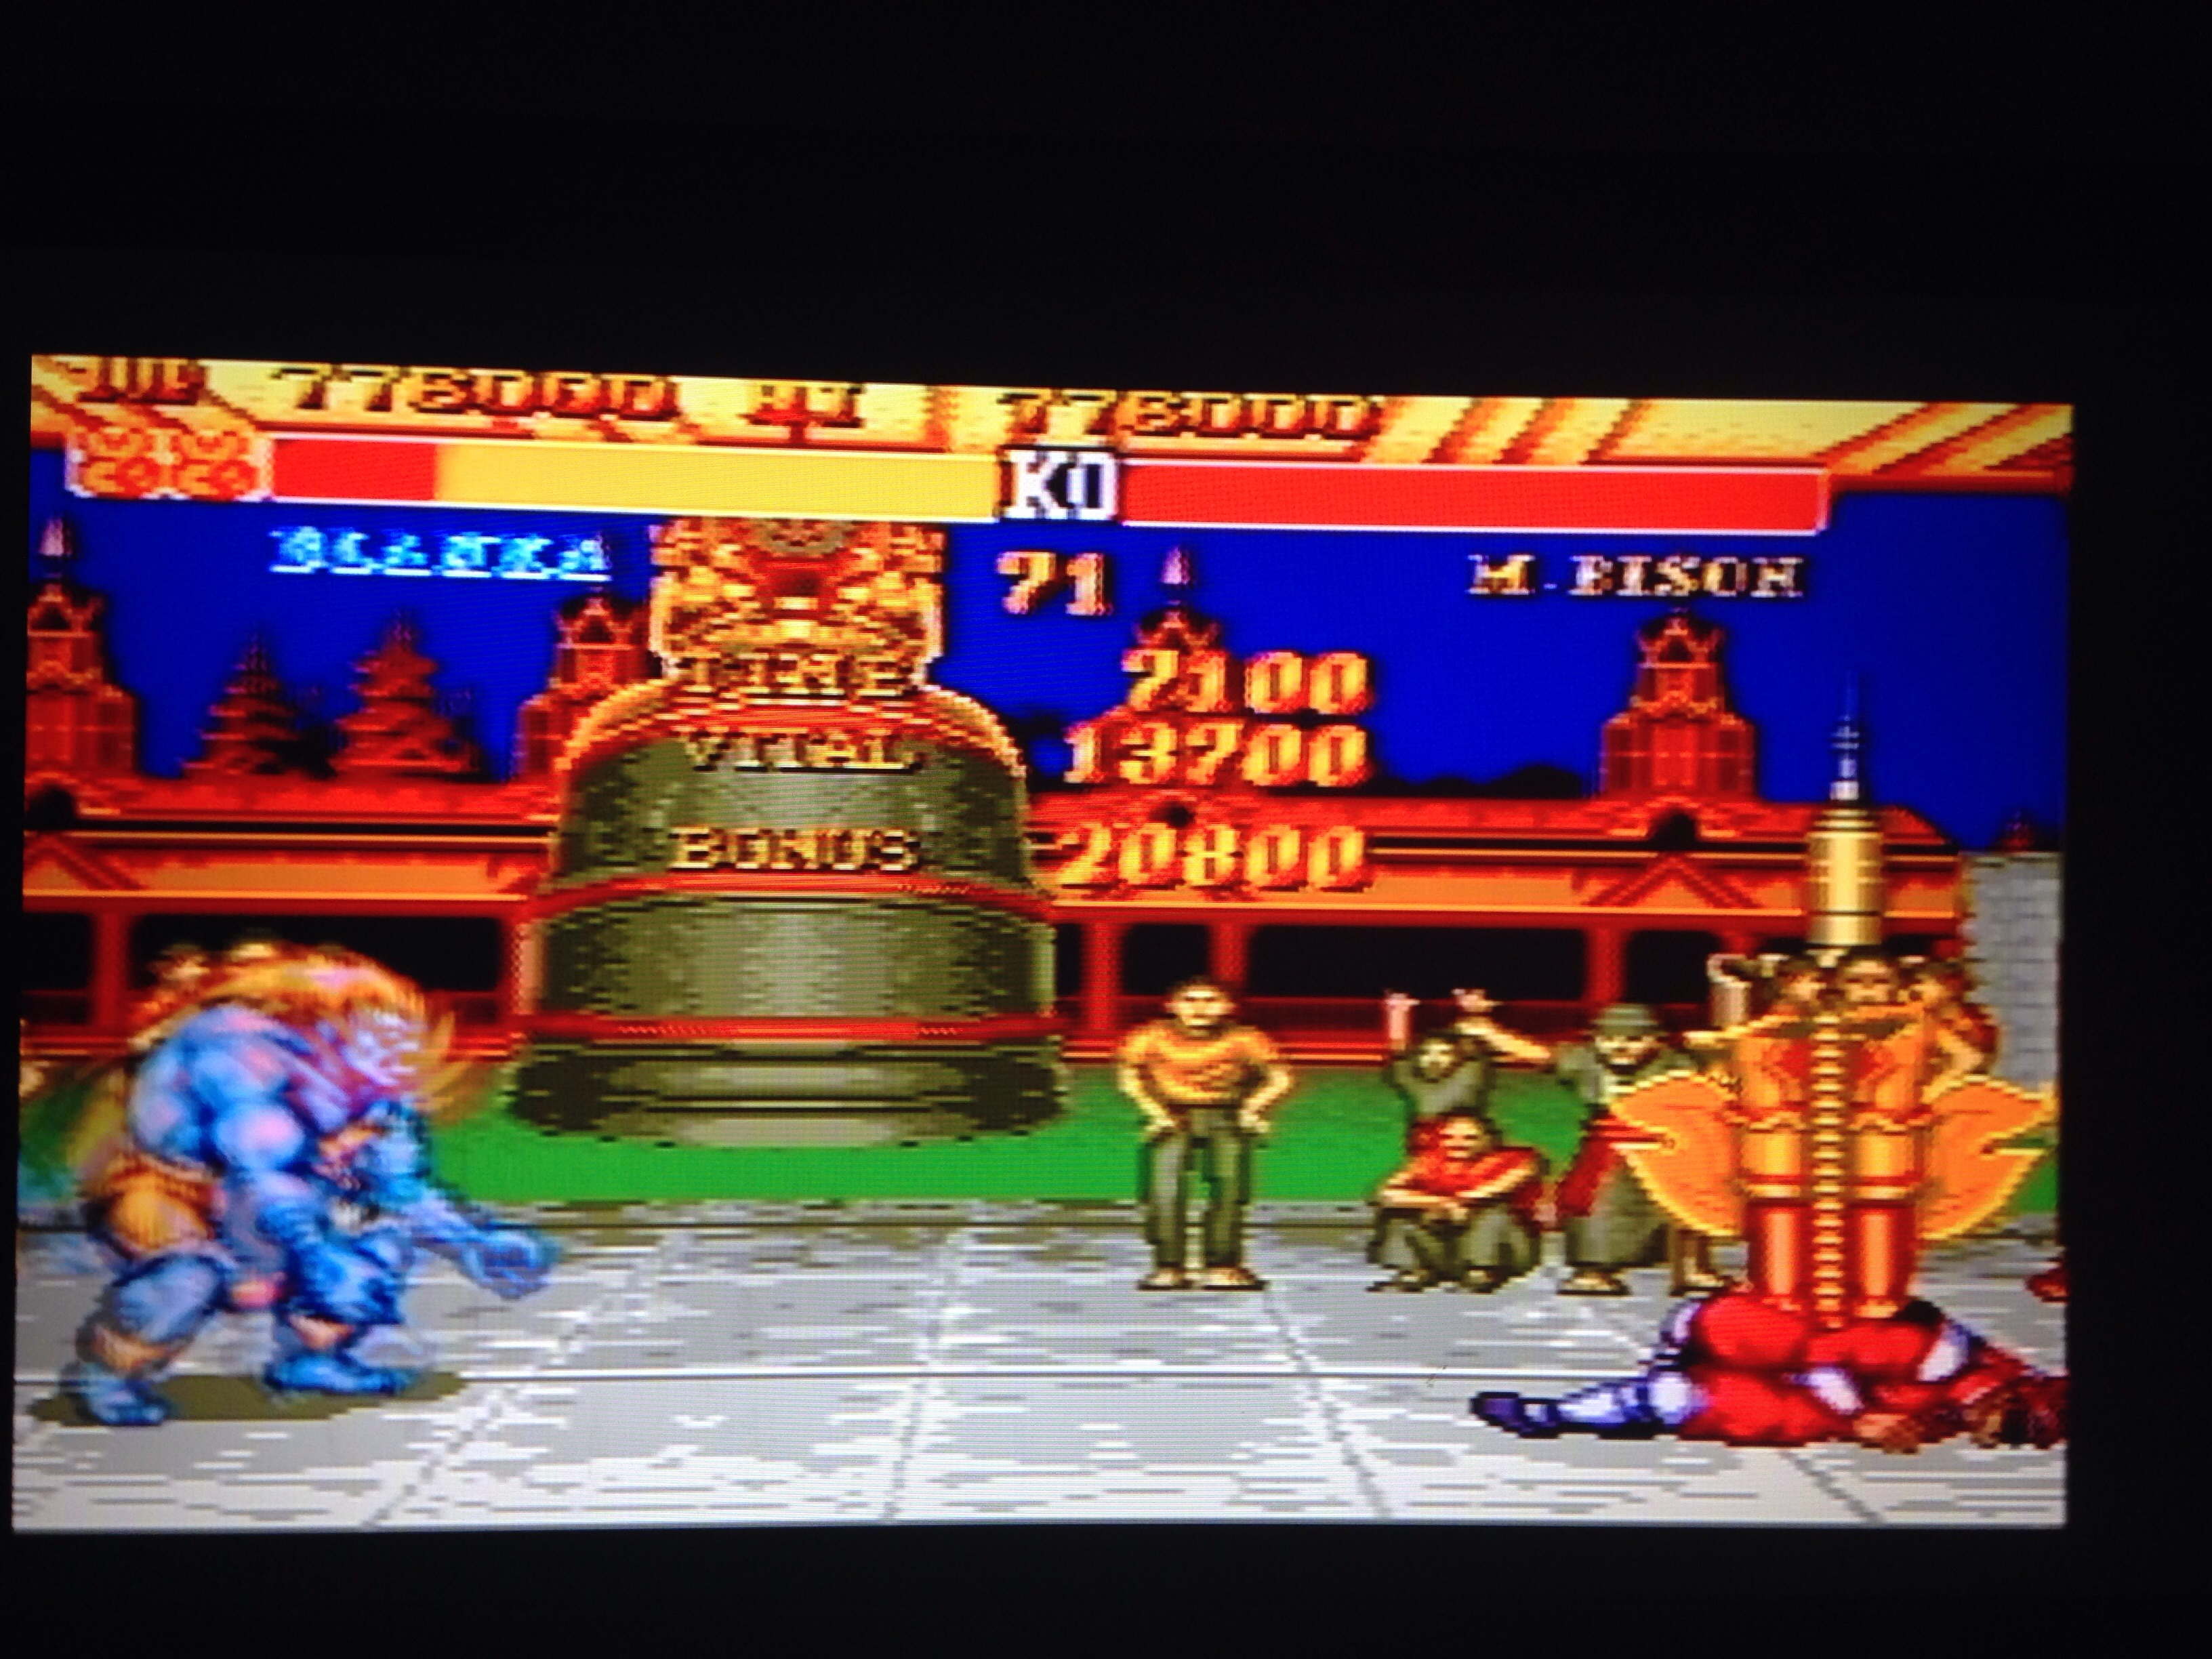 Street Fighter II 776,000 points